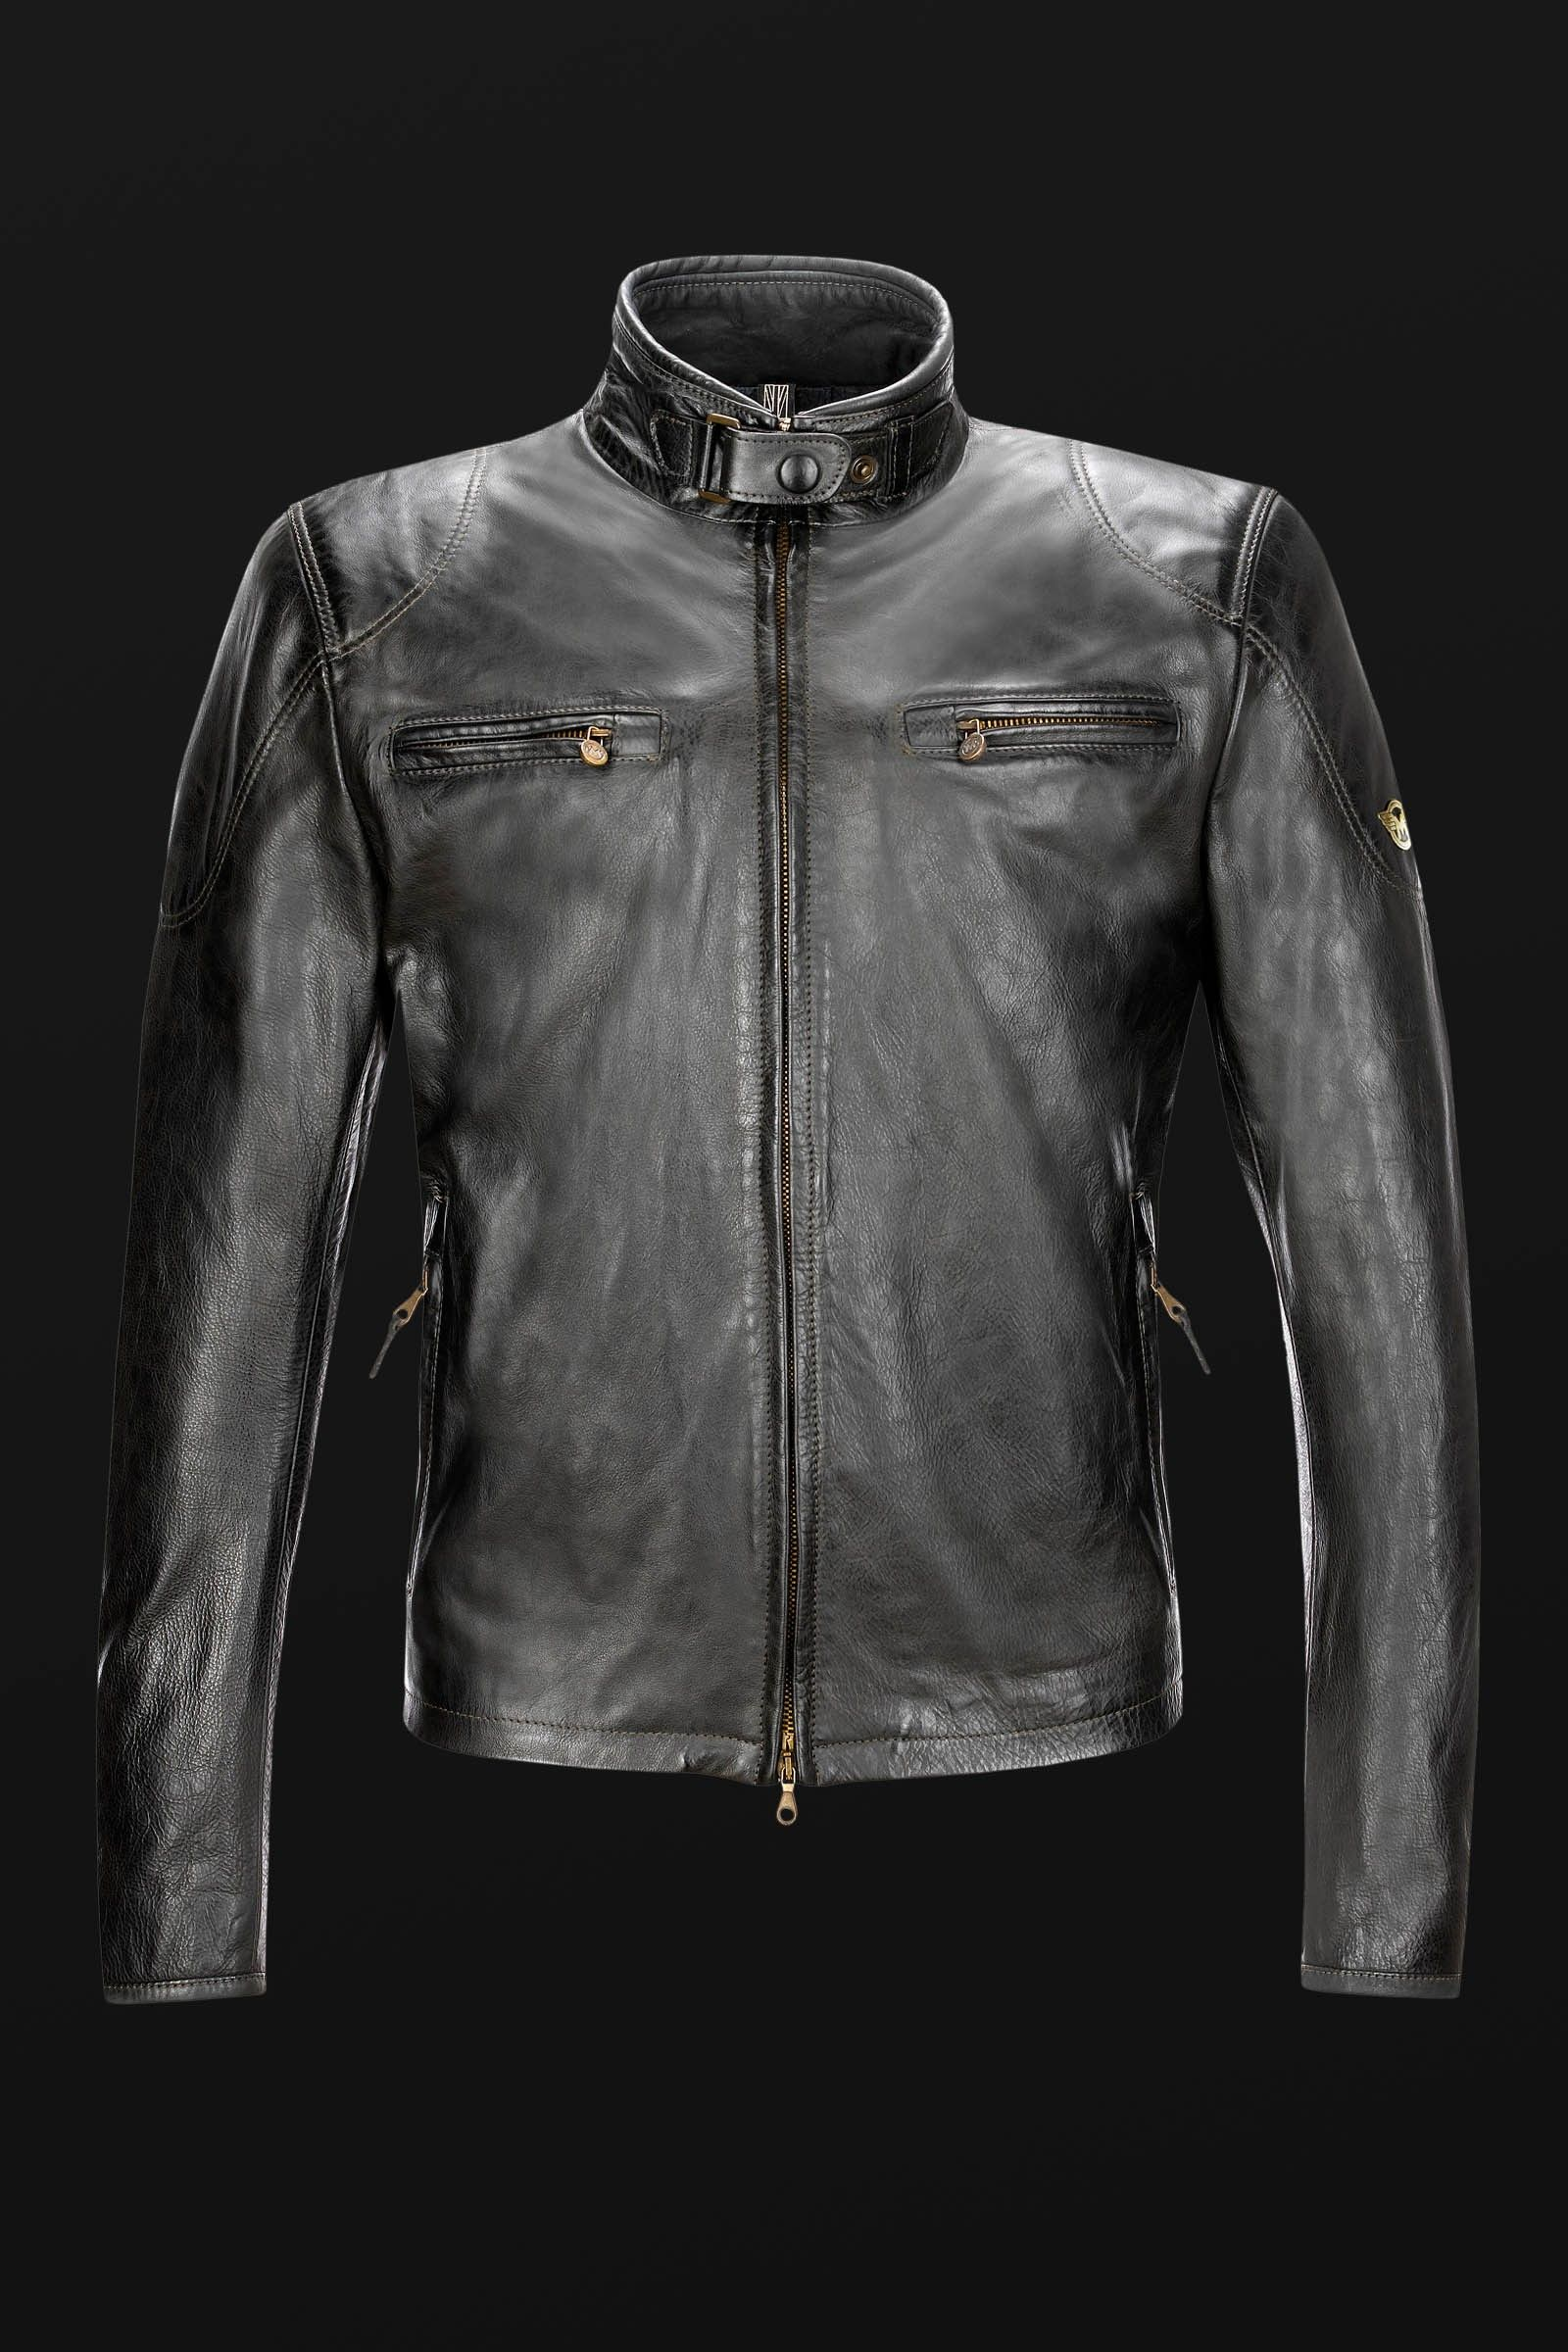 f6fa9fd02 OSBORNE BLOUSON - leather - jackets - man - Matchless London ...